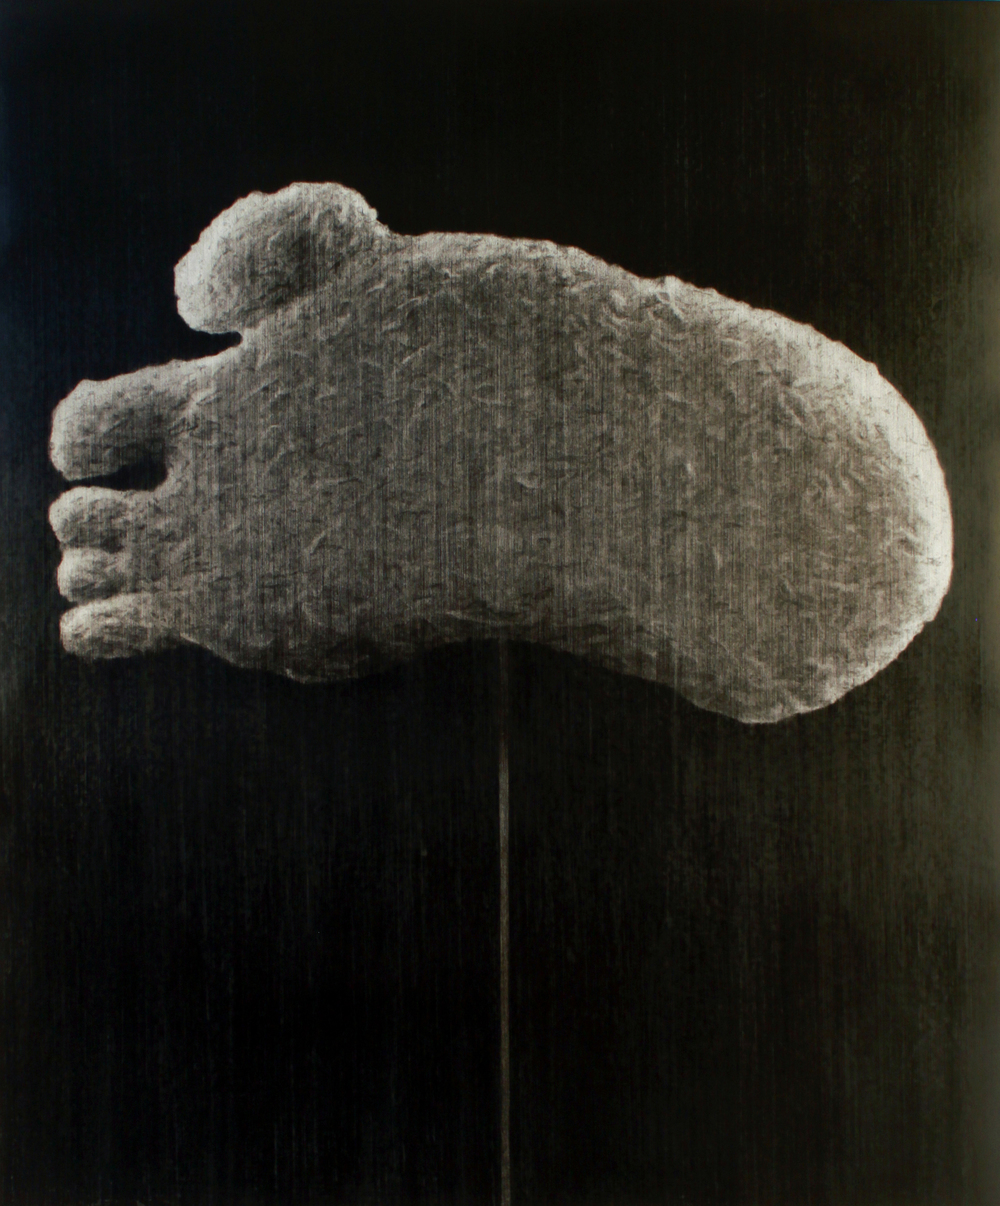 The Undisputed Heavyweight Champion Of The World . 2014. Charcoal on paper. 130x110cm